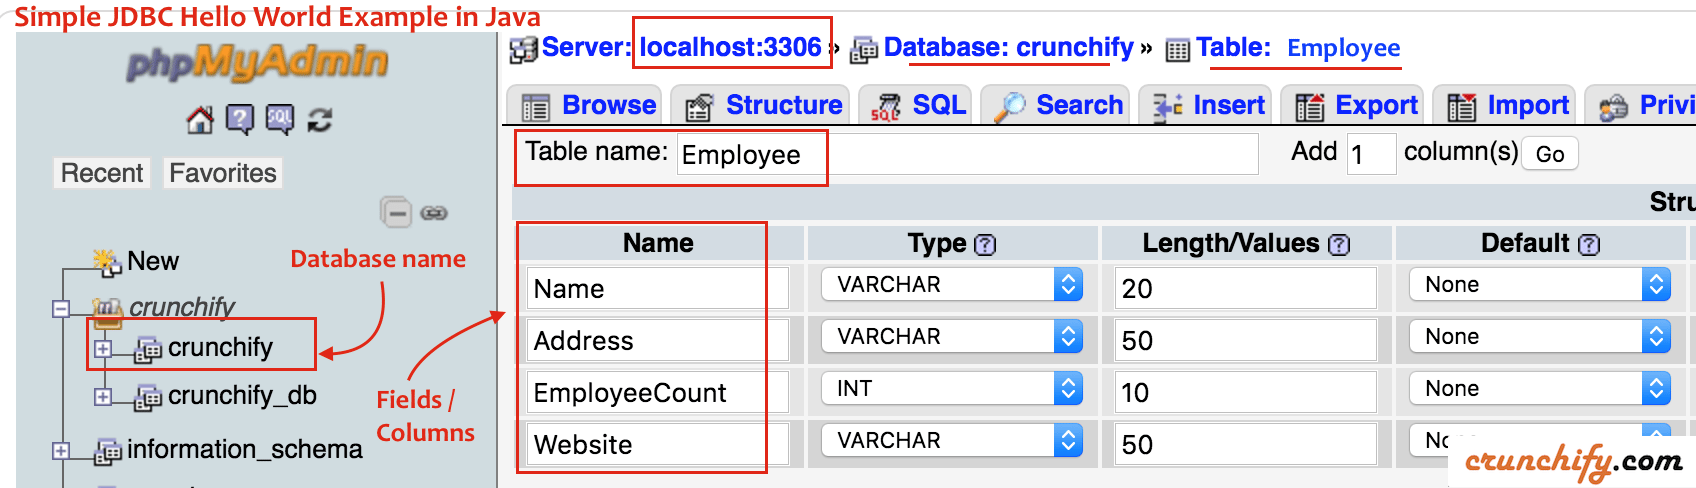 Simple JDBC MySQL Hello World Example in Java by Crunchify